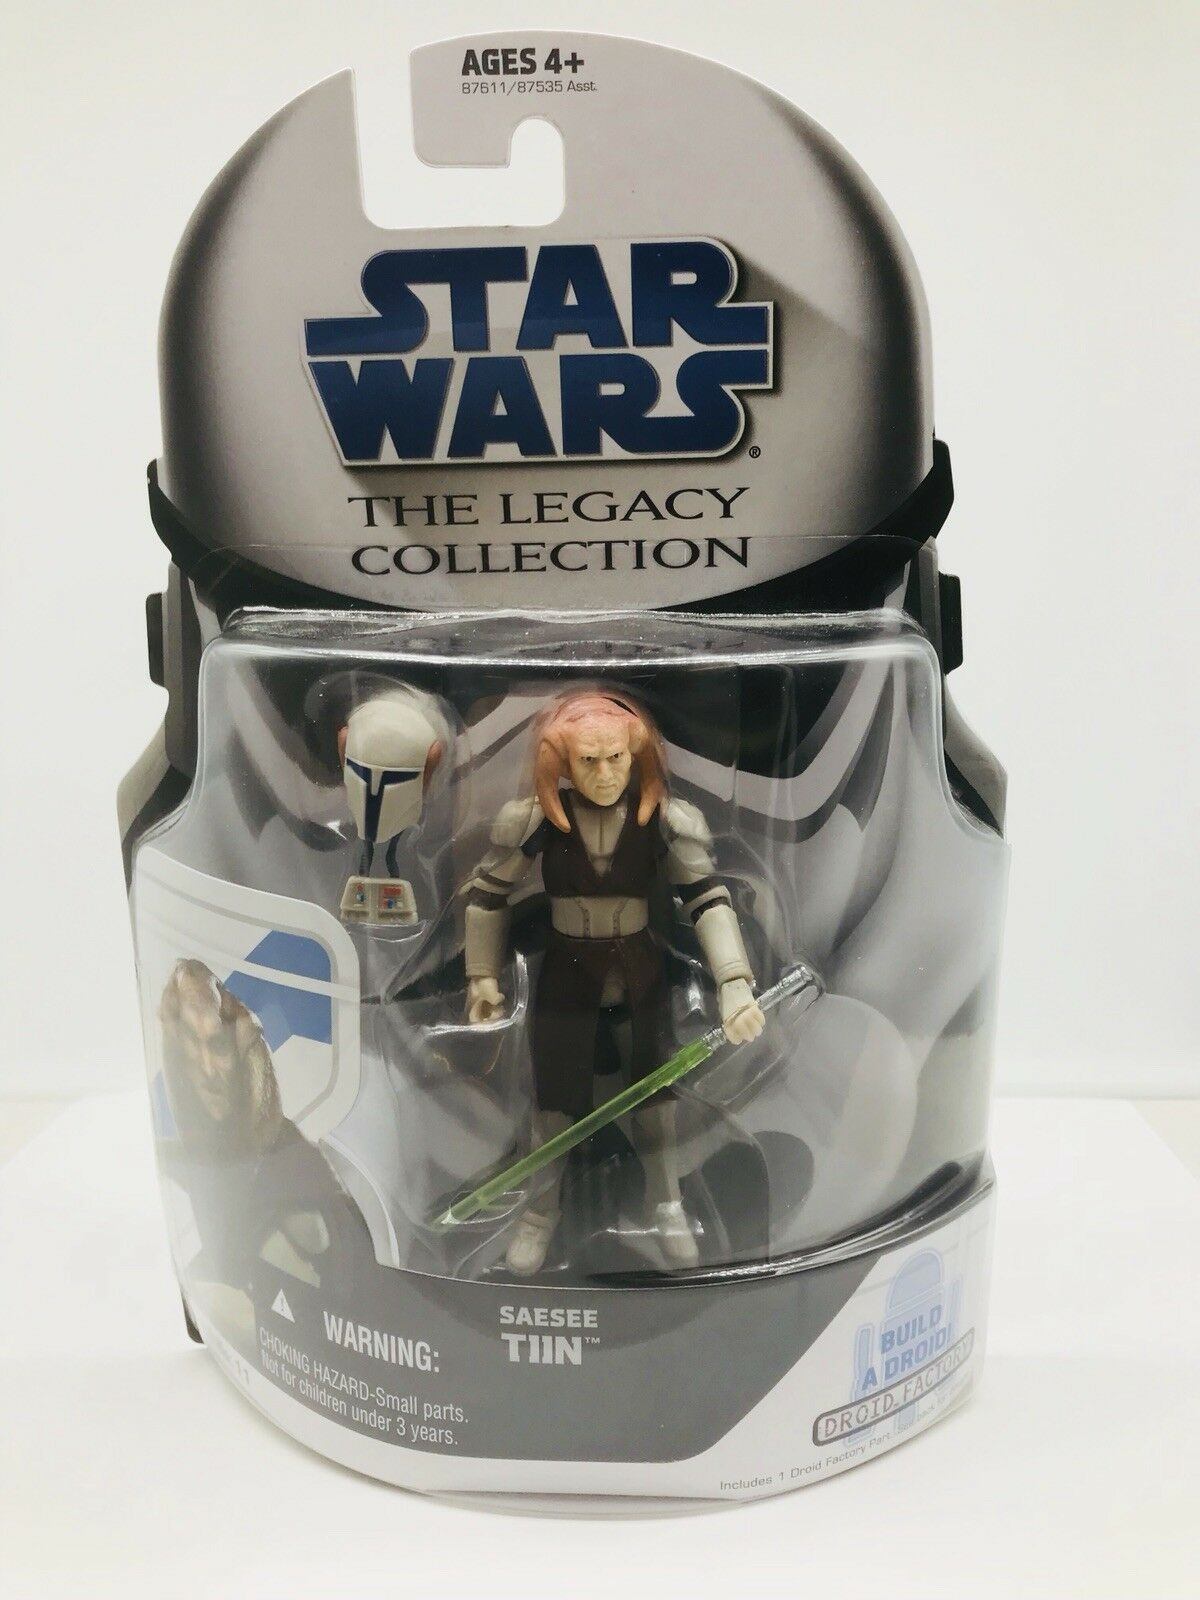 Star Wars Legacy Collection Saesee Tiin  Clone Wars BD11 with  leg for R7-T1